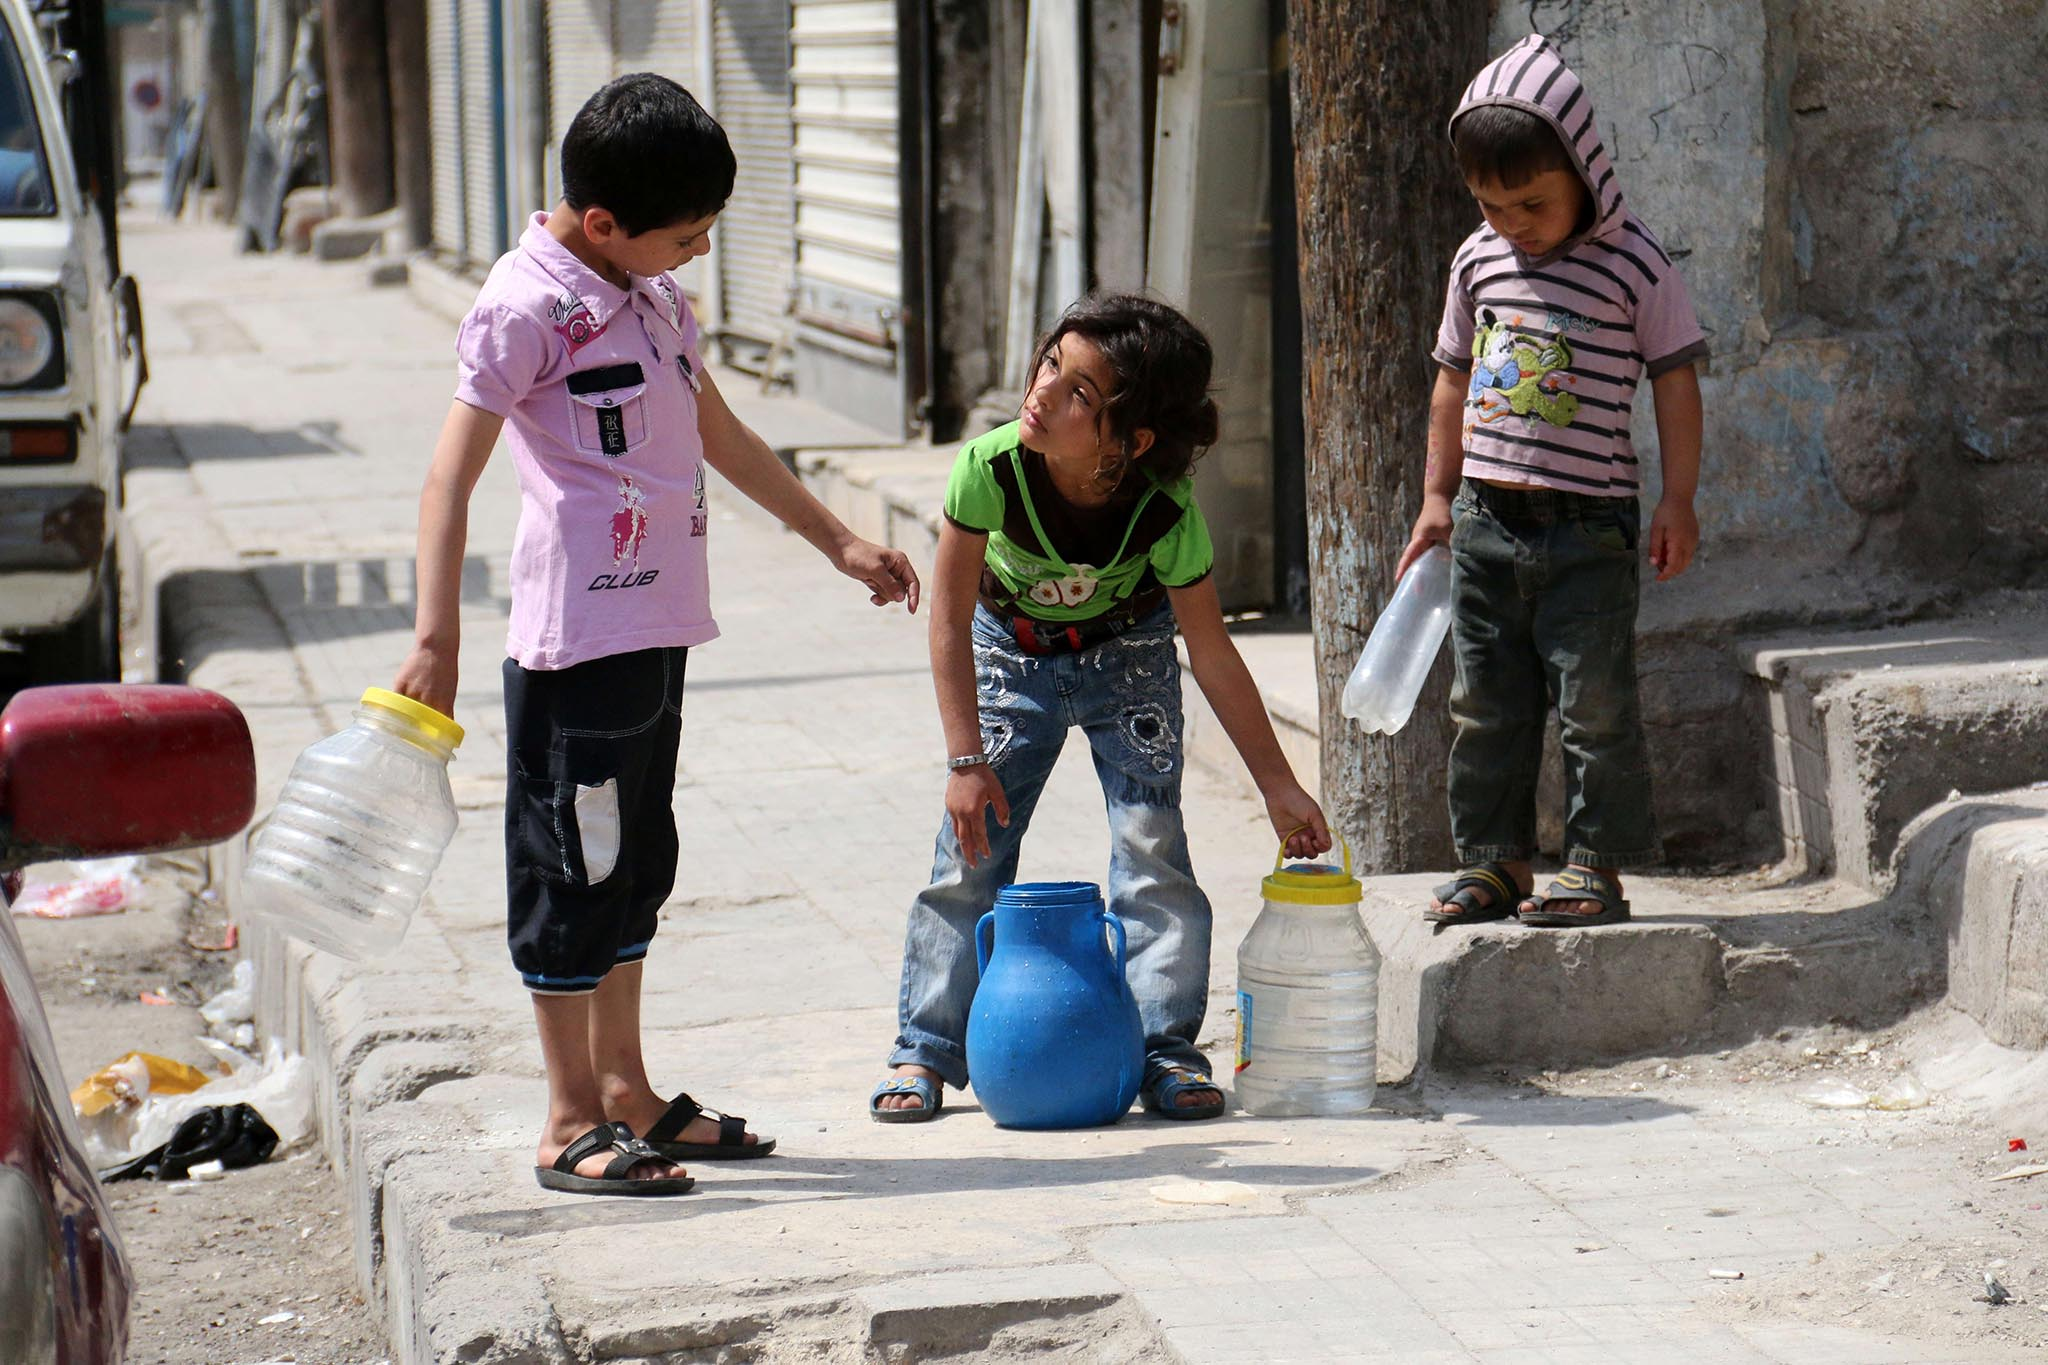 Children carry buckets of water in a rebel-held area in Aleppo